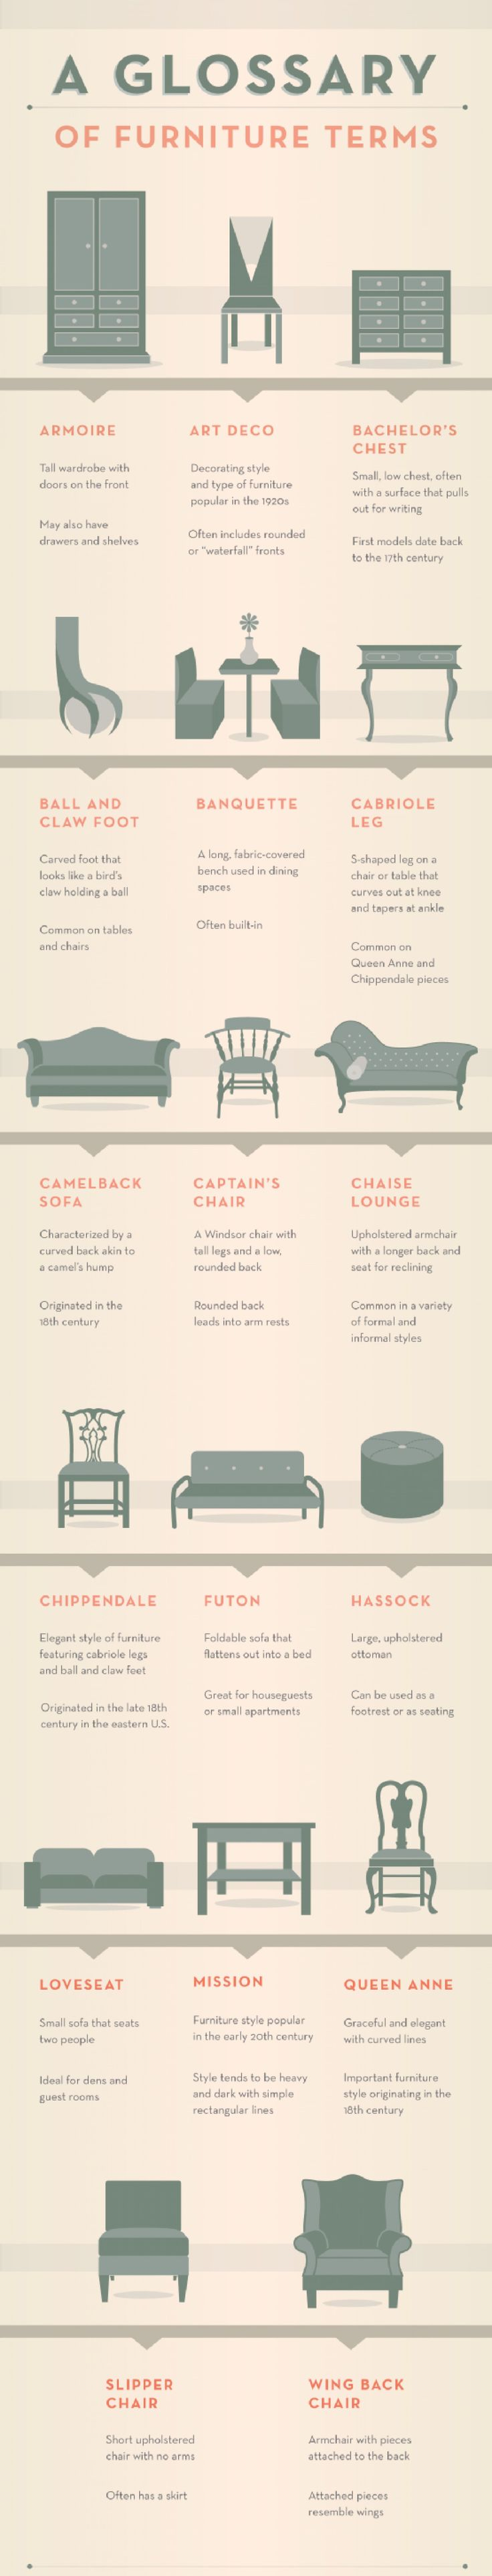 Furniture Terms + Styles U003d Good Graphical Representation Of Some Of The  Basic Furniture Styles And Terms